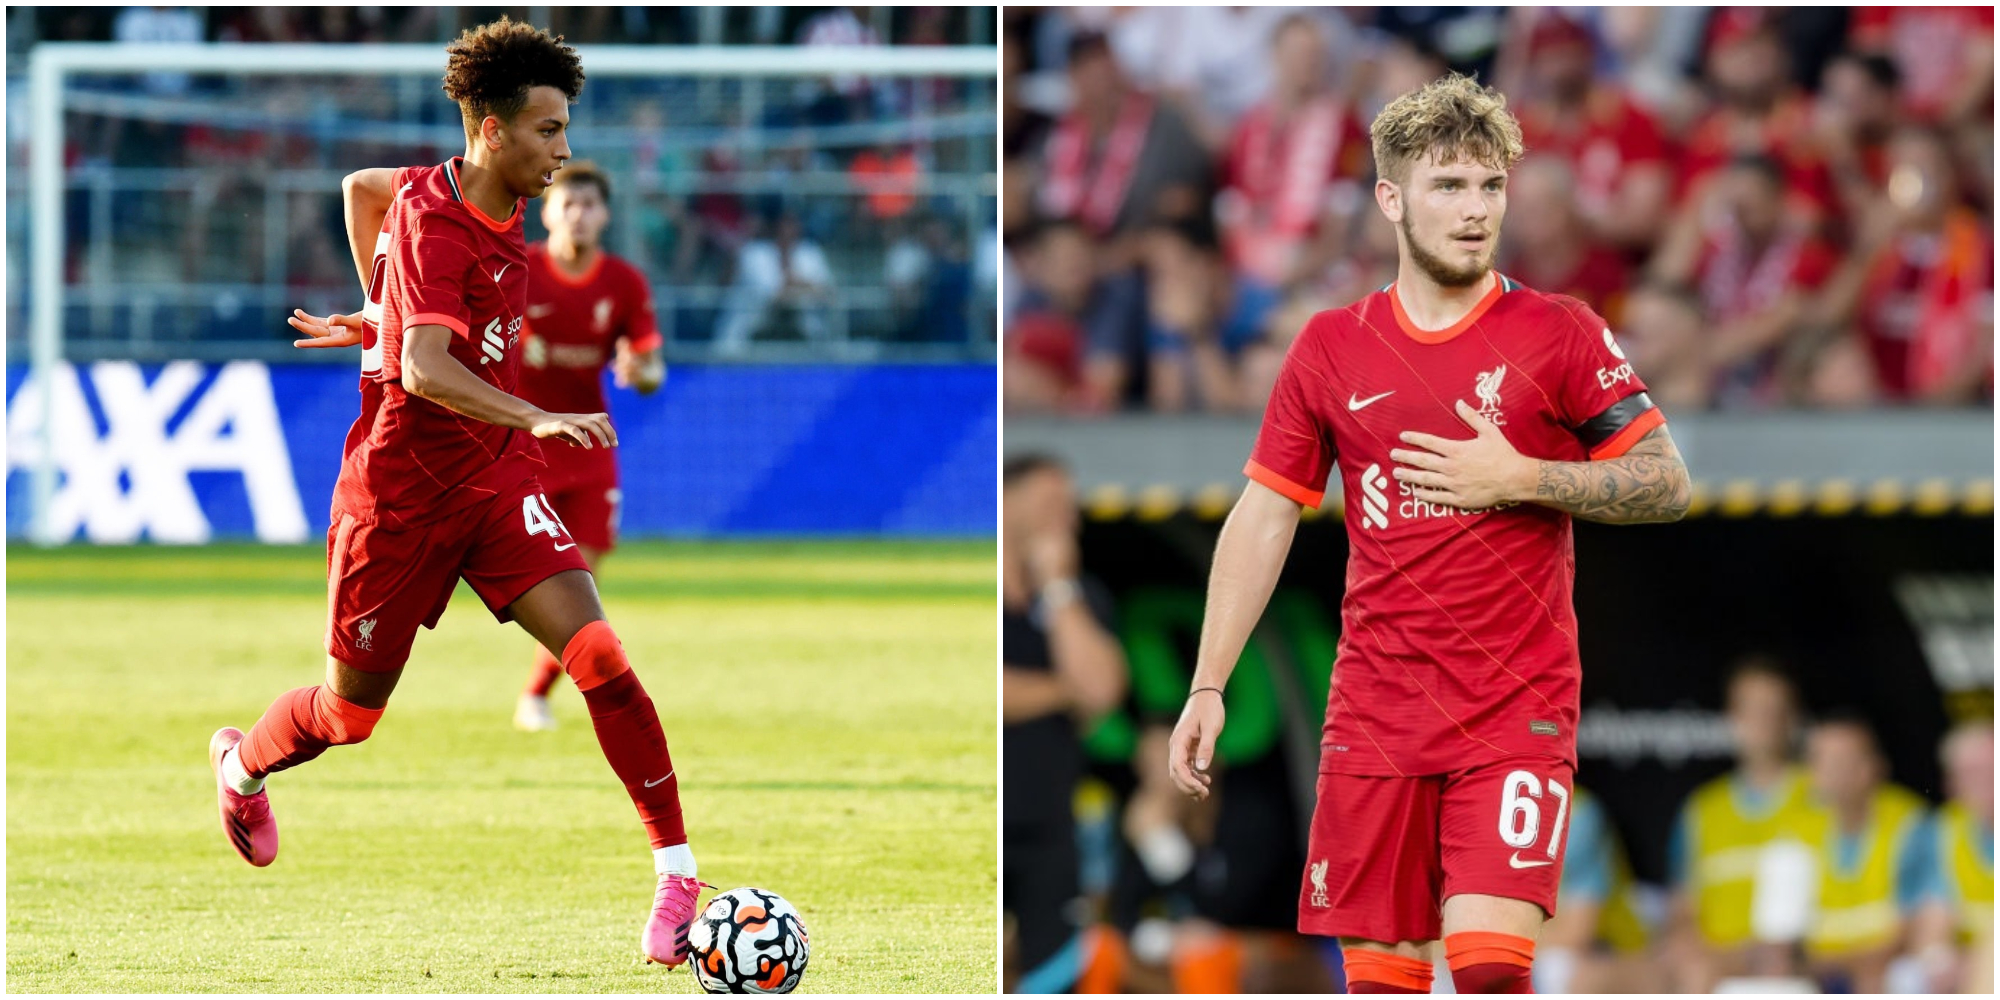 'Two big talents' – Lijnders reserves praise for 'excellent' Liverpool starlets who shone in pre-season